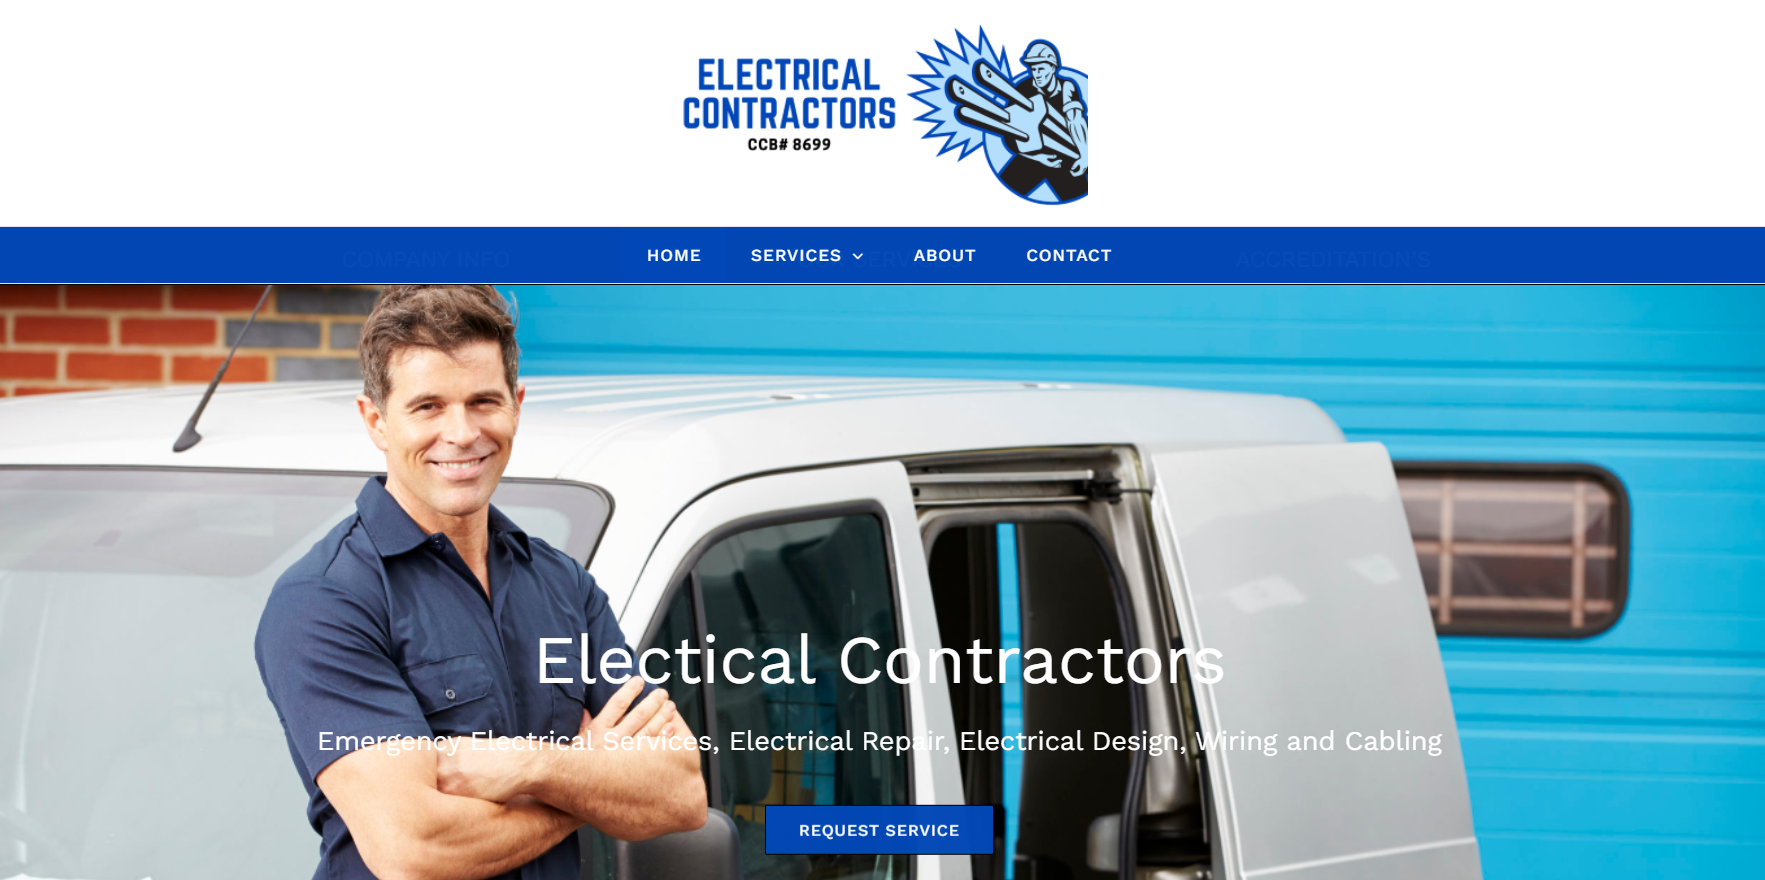 General Contractor demo website designed by JH Web Design